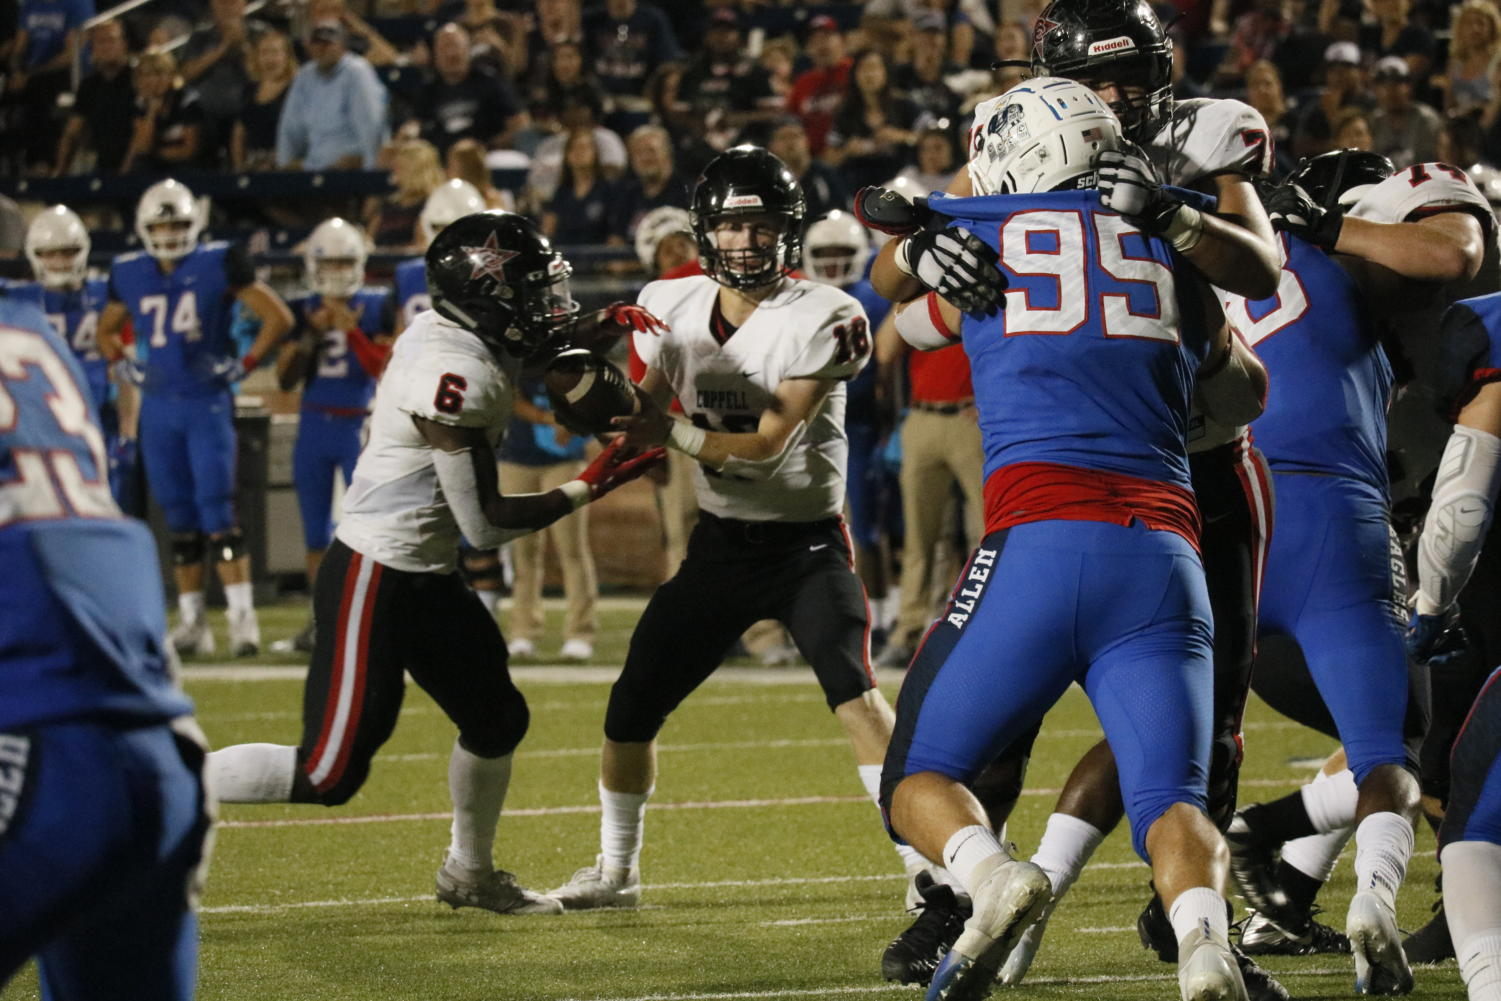 Coppell junior quarterback Ryan Walker hands off to junior running back Jason Ngwu as they near the endzone at Eagle Stadium on Friday night. The Cowboys kept up with Allen but eventually fell, 28-21, to the nationally-ranked team.